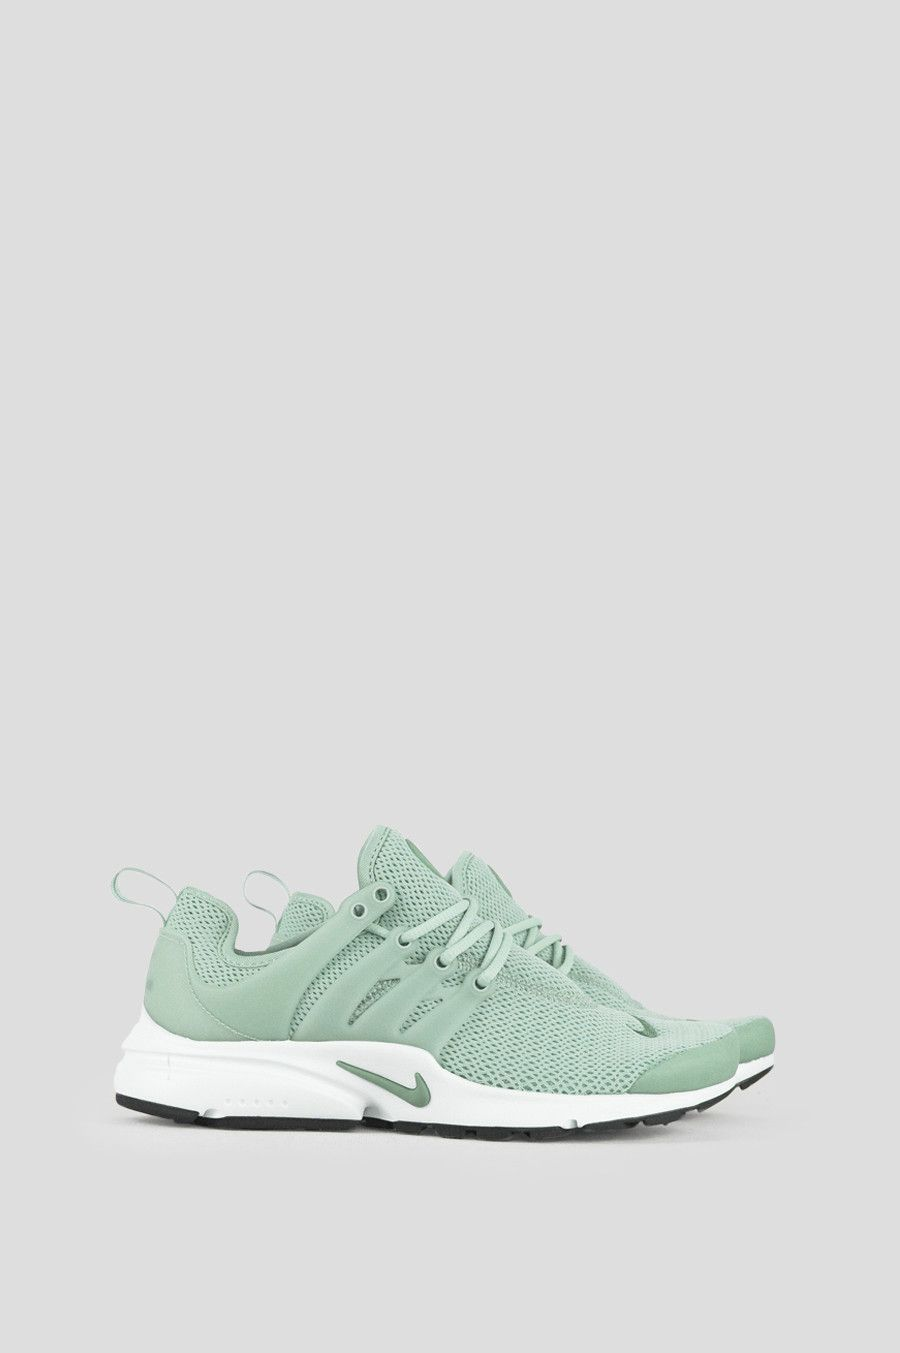 meet 00e97 f476f ... The Nike Air Presto Womens Shoe is inspired by the comfort and  minimalism of a classic ...